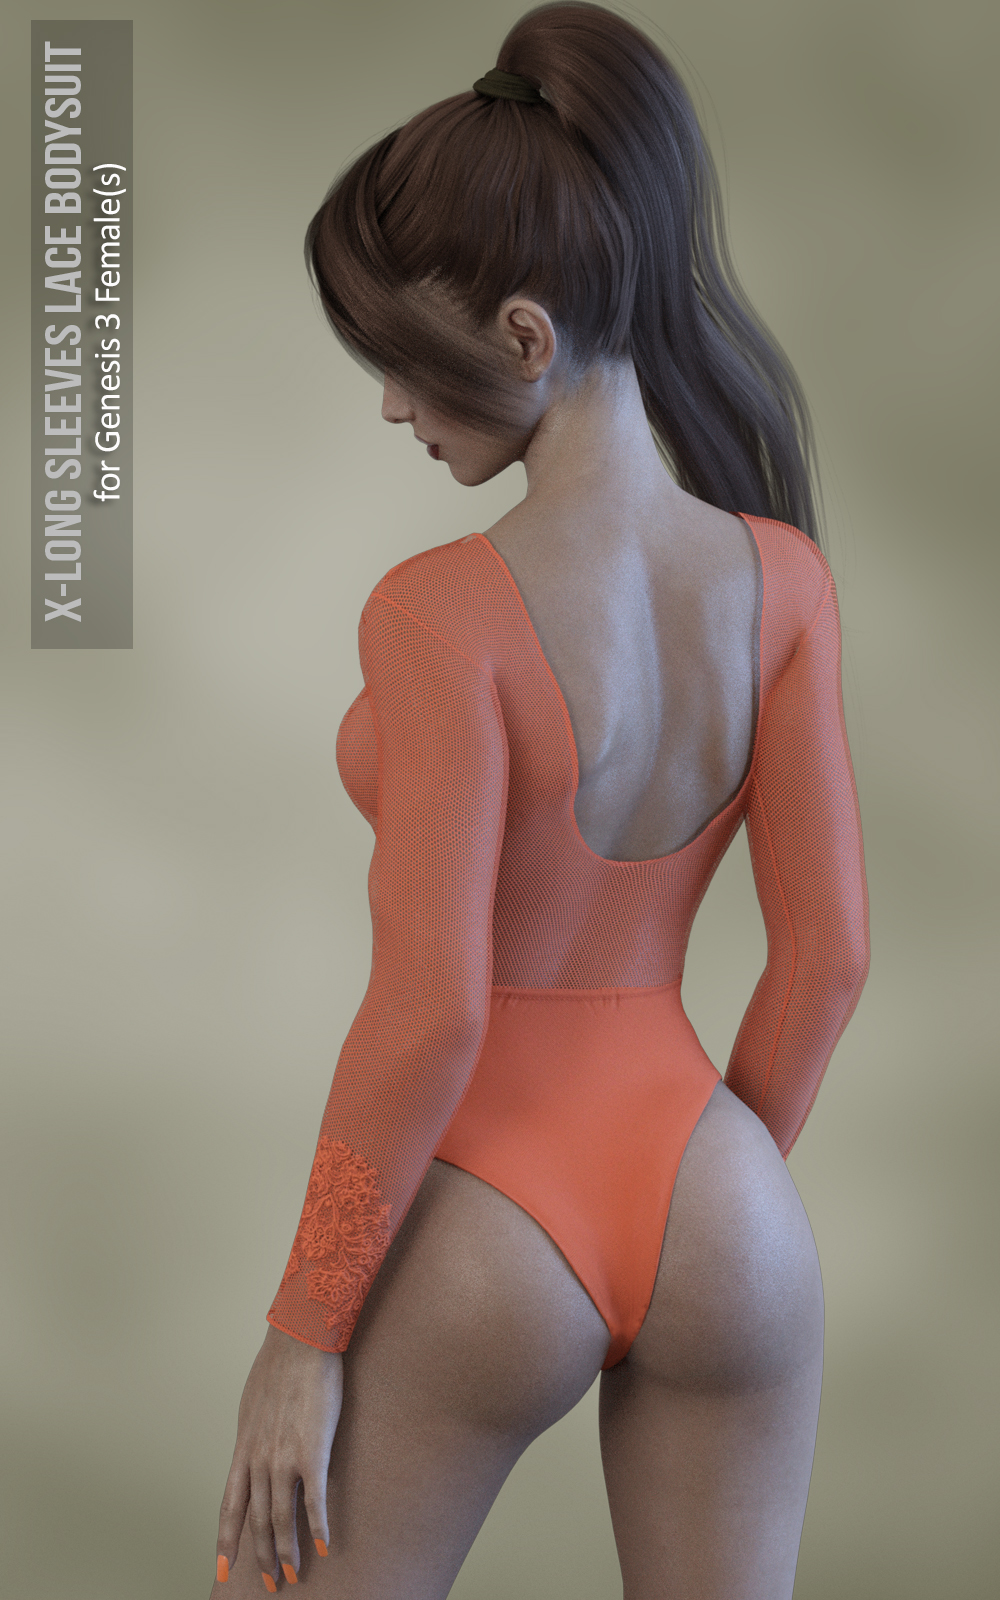 X-Fashion Long Sleeves Bodysuit for Genesis 3 Females. Warning! Content  Advisory  Some images may contain content not suitable for all viewers.  Previous ... 09e069440